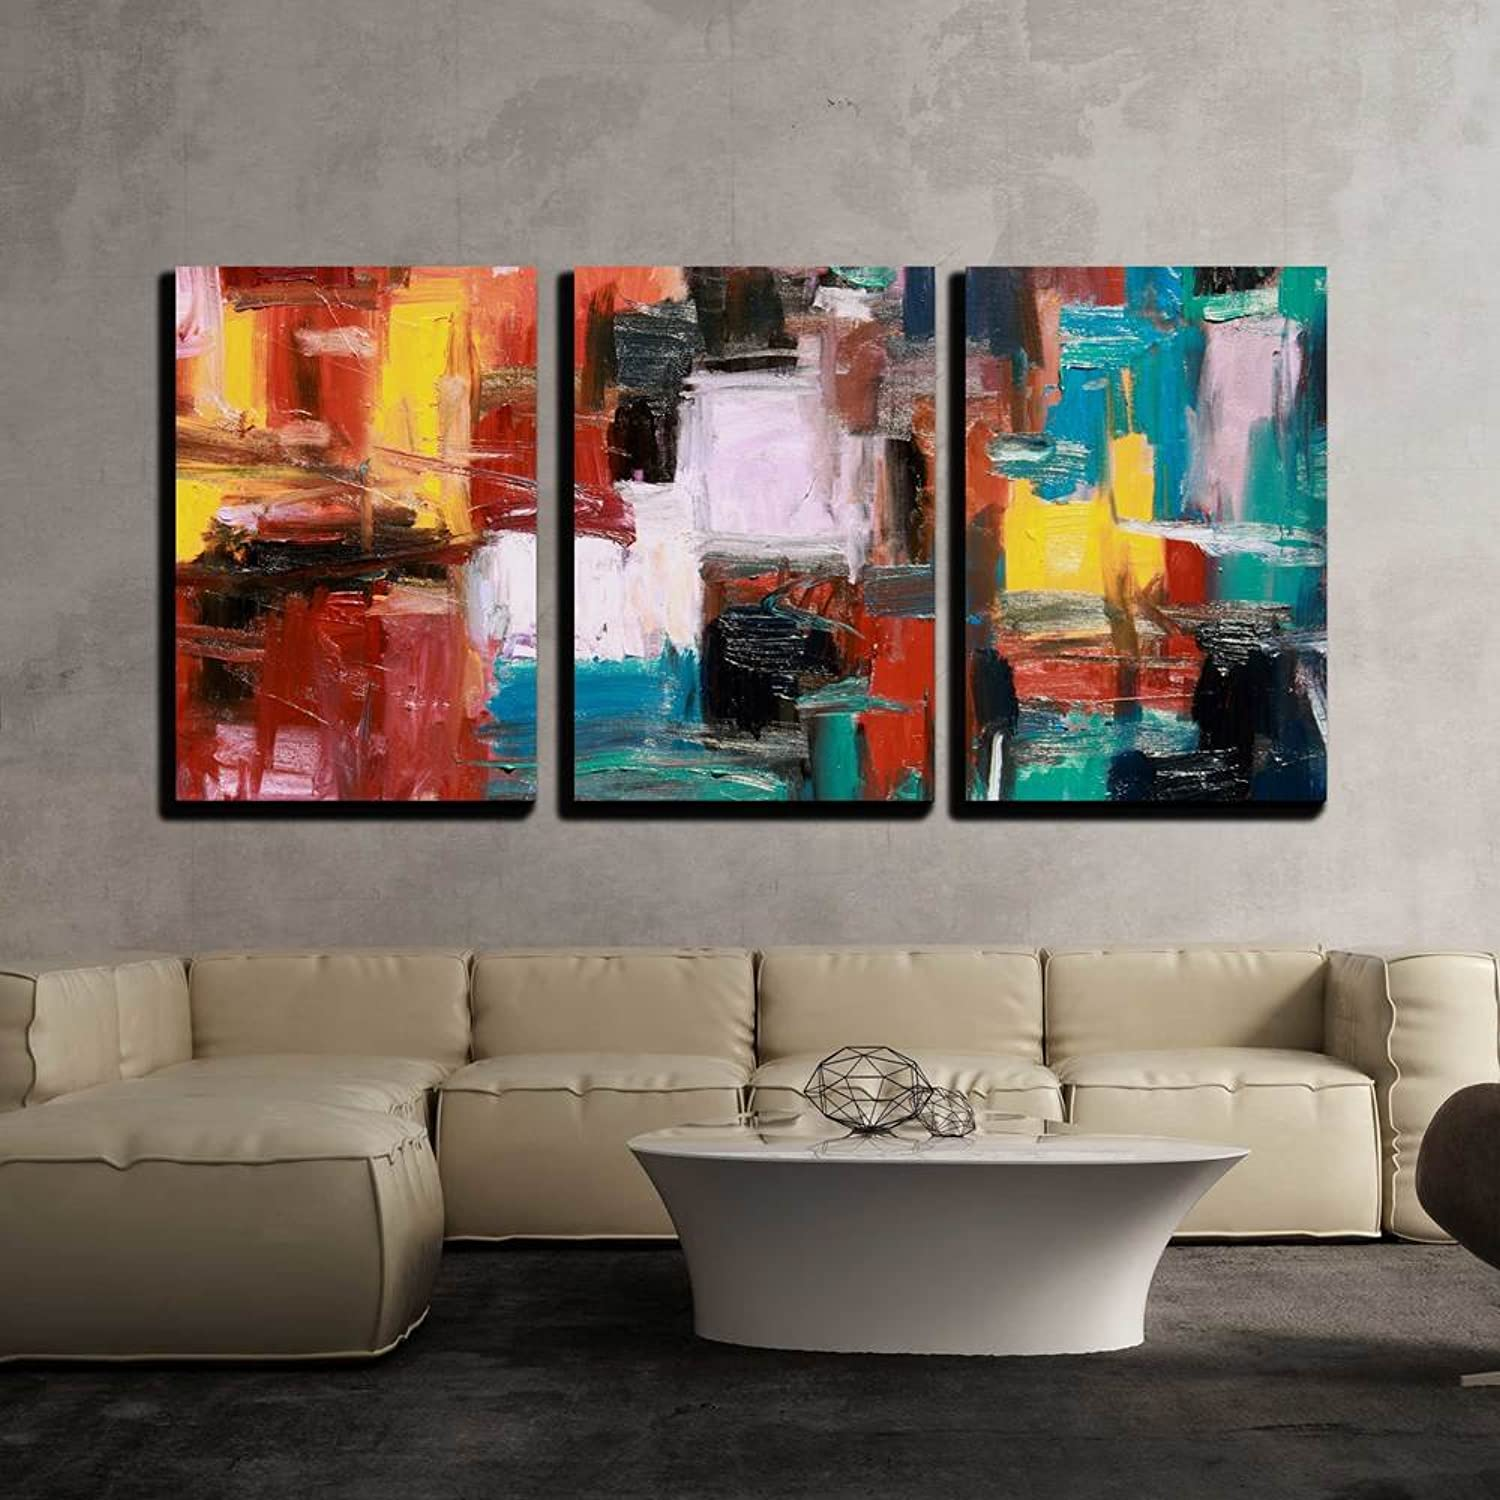 Wall26 - 3 Piece Canvas Wall Art - Abstract Painting - Modern Home Decor Stretched and Framed Ready to Hang - 24 x36 x3 Panels